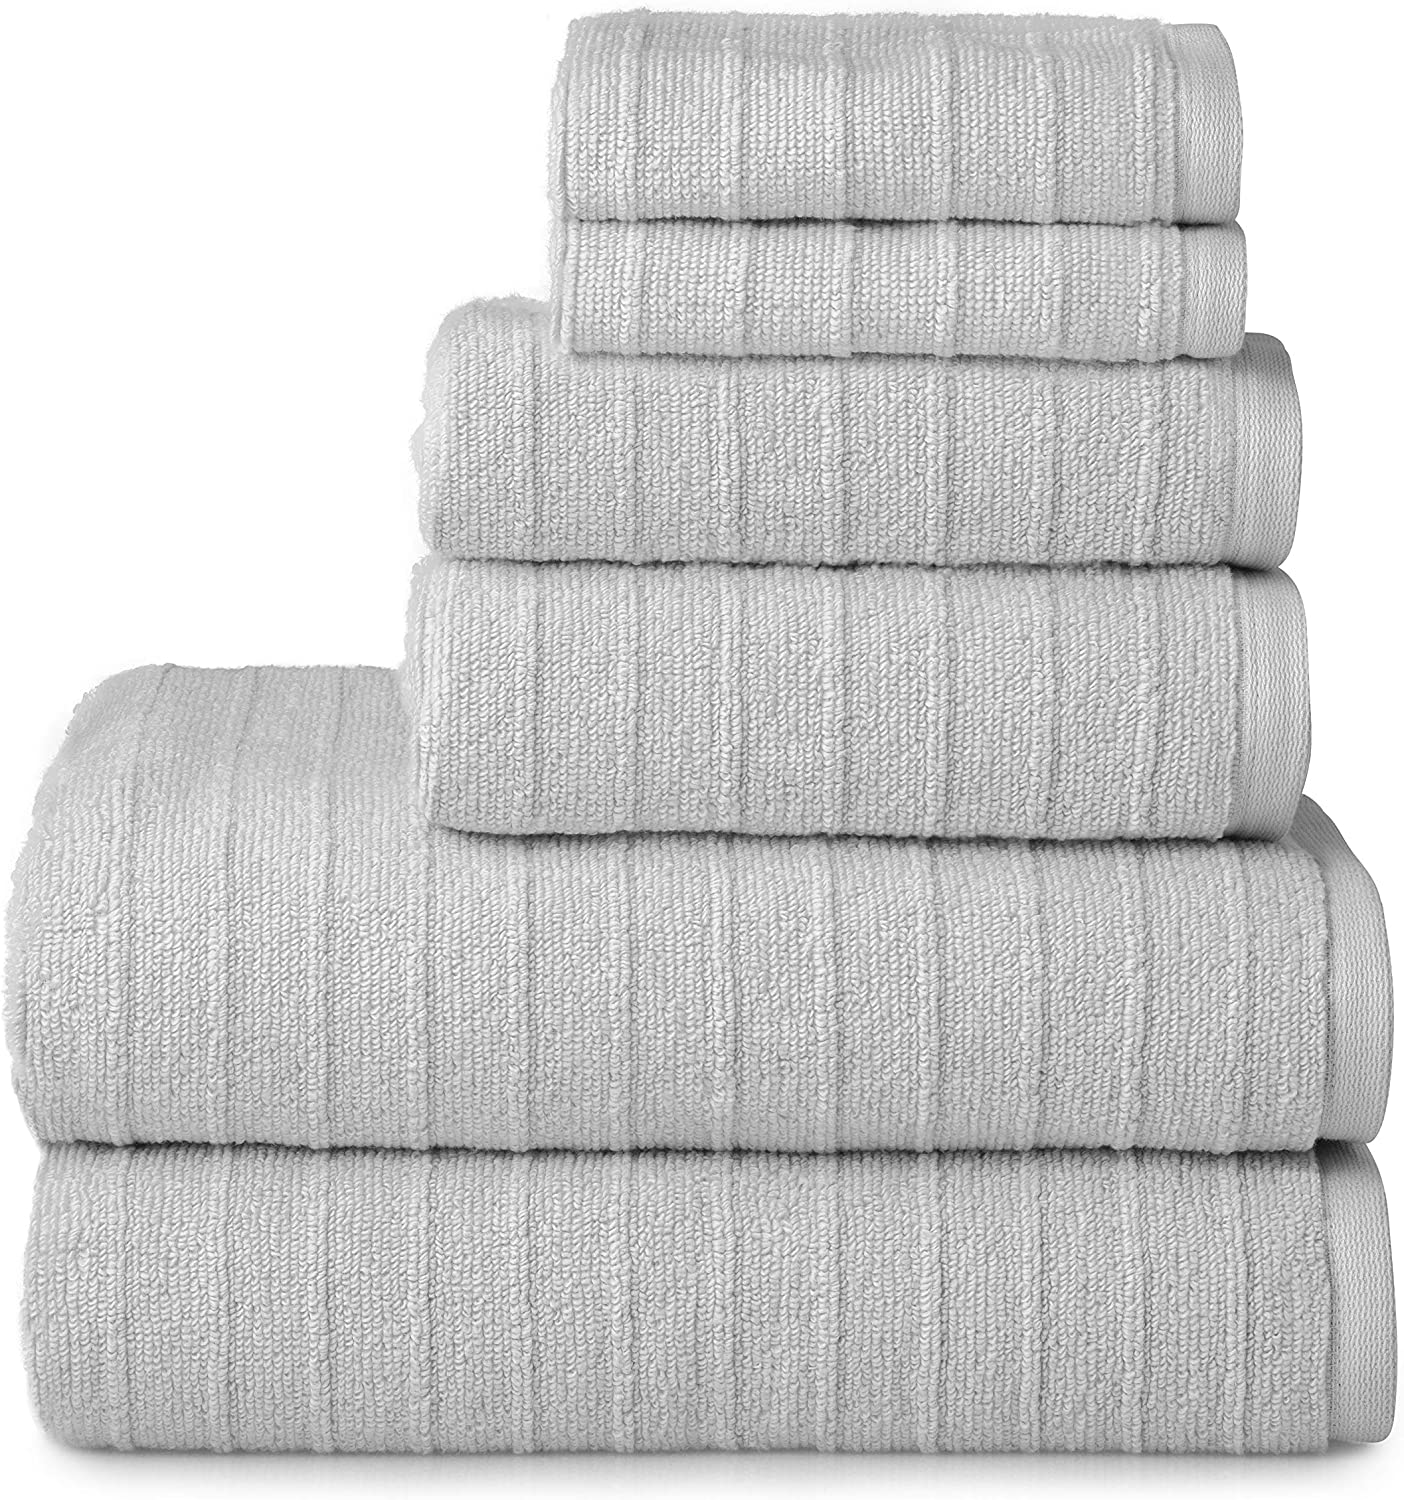 Welhome James 100% Cotton 6 Piece Towel Set | Silver Grey | Stripe Textured | Supersoft & Durable | Highly Absorbent & Quick Dry | Ideal for Everyday Use | 450 GSM | 2 Bath 2 Hand 2 Wash Towels